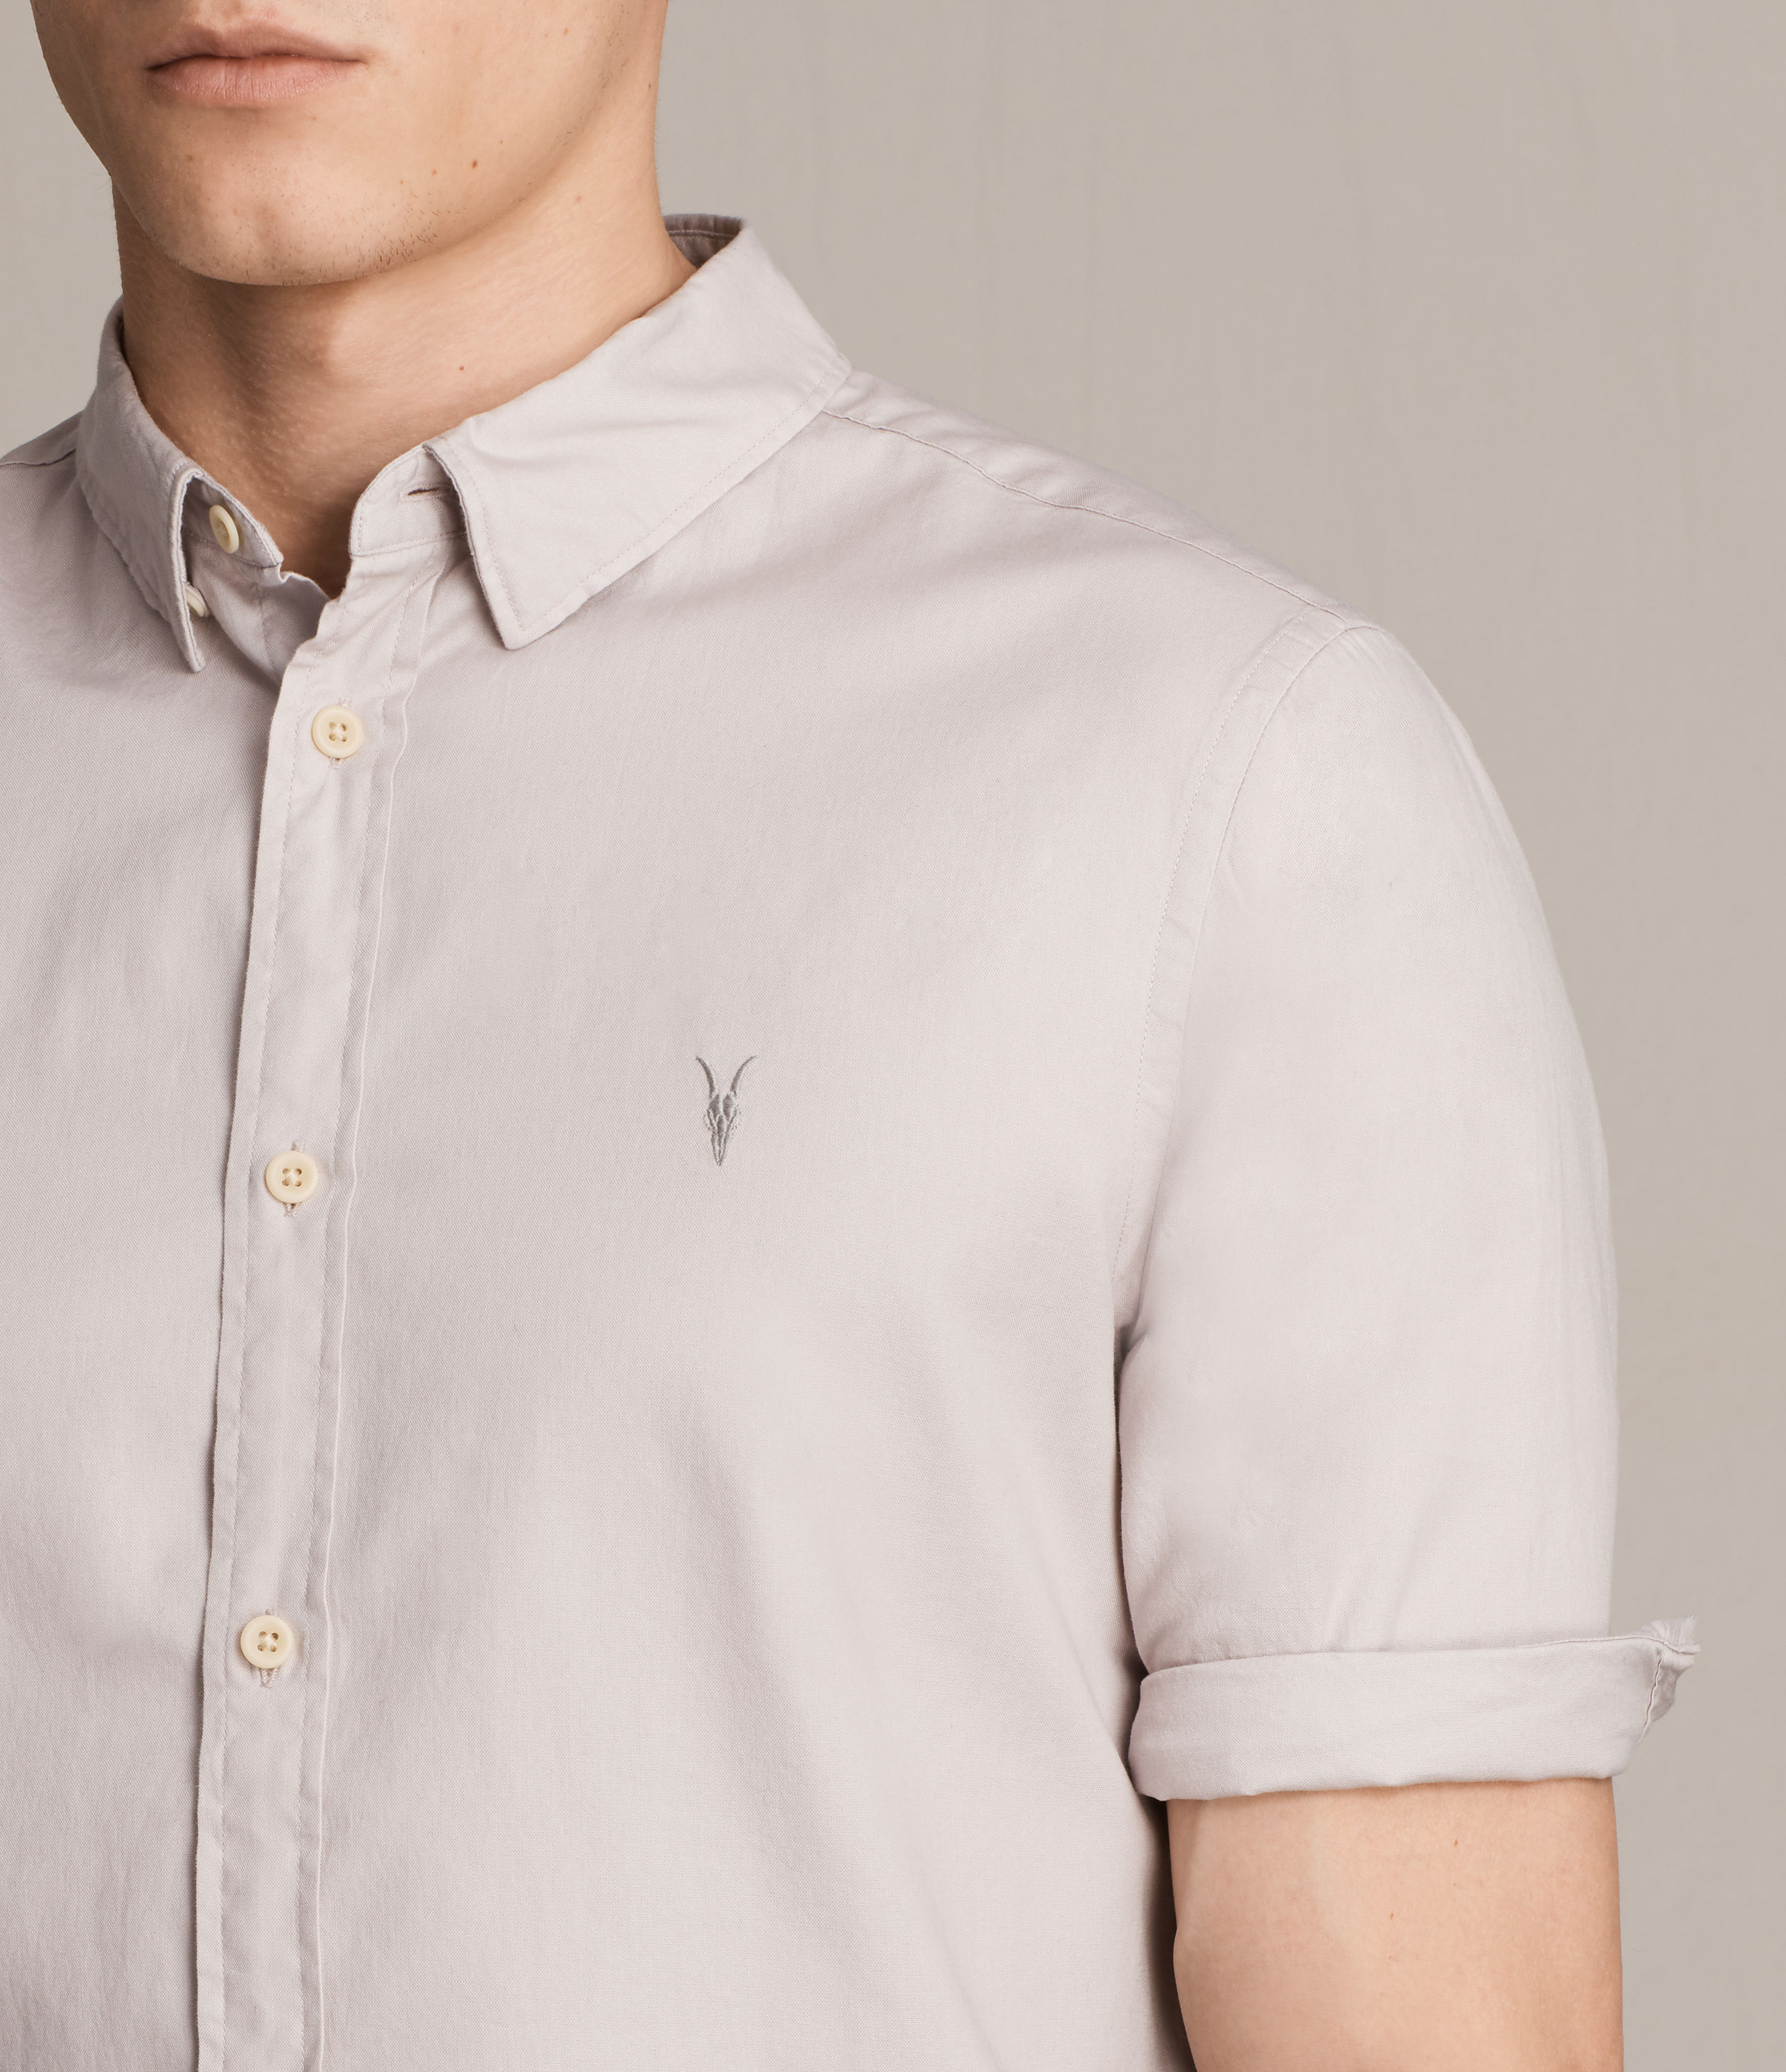 d6e9583df96a Redondo Half Sleeved Shirt by AllSaints — Thread